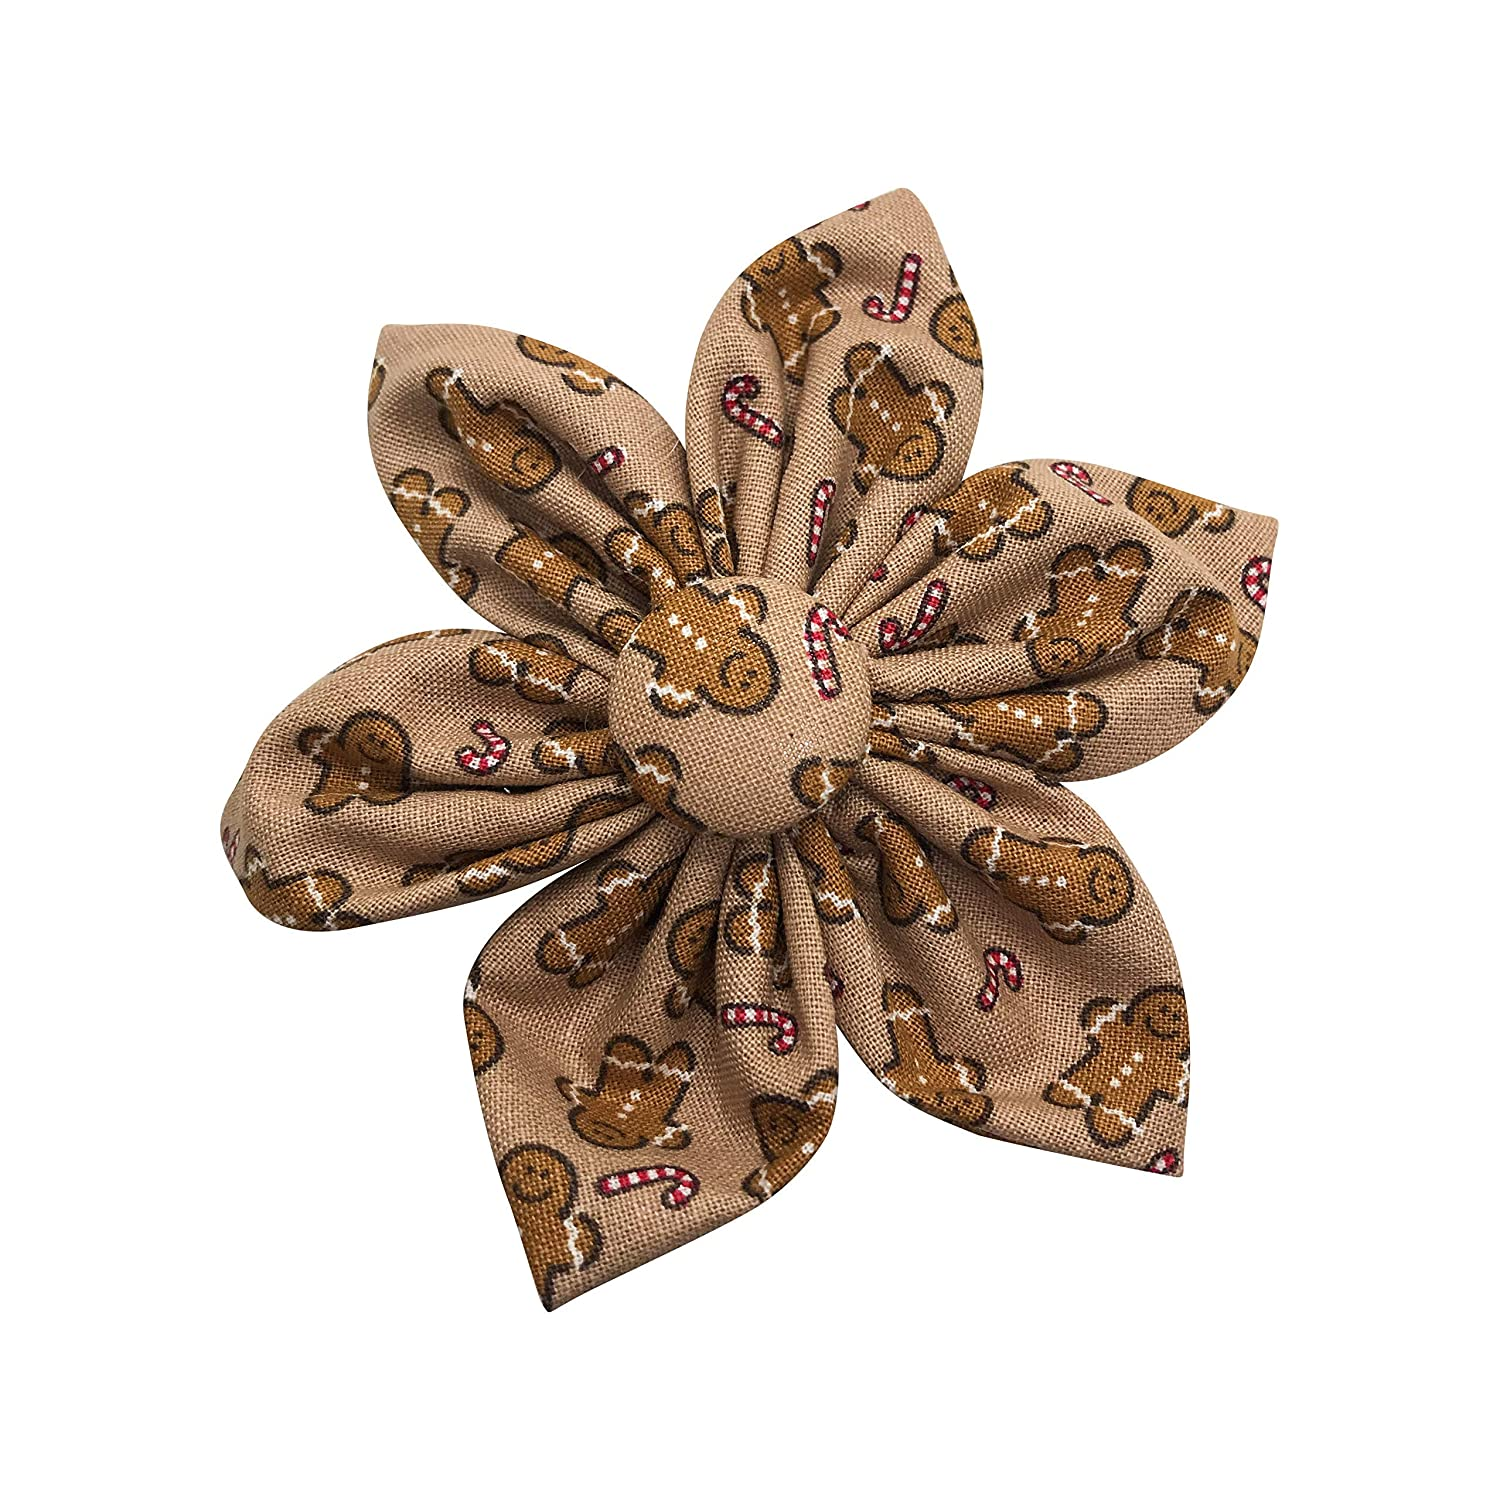 Handmade Flower Girls 5 popular Hair Alligator Bow Clip Popular products with